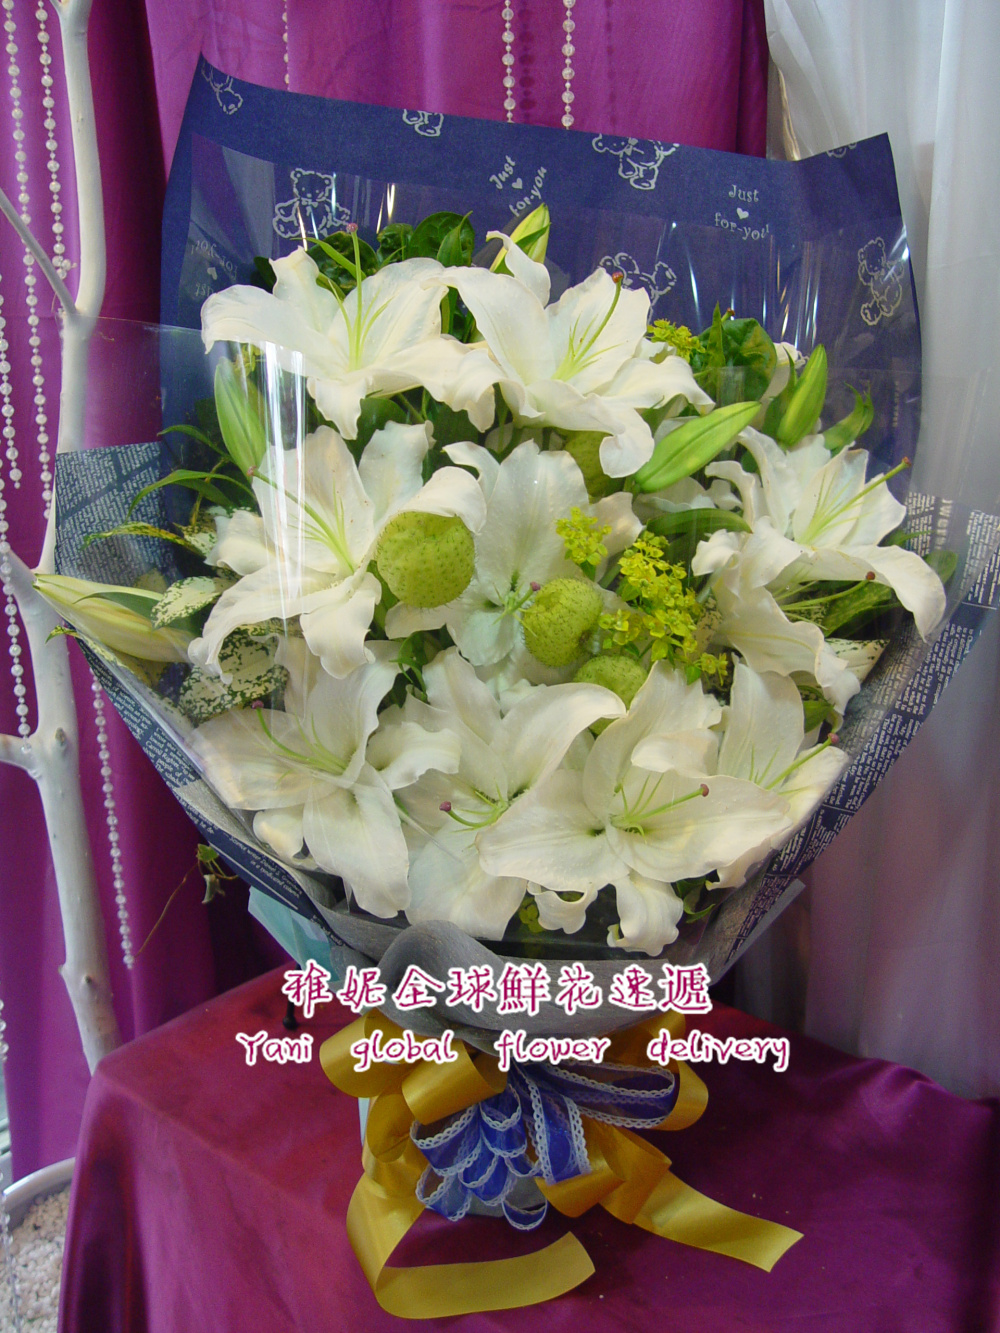 China Cheap Mothers Day China Cheap Mothers Day Shopping Guide At